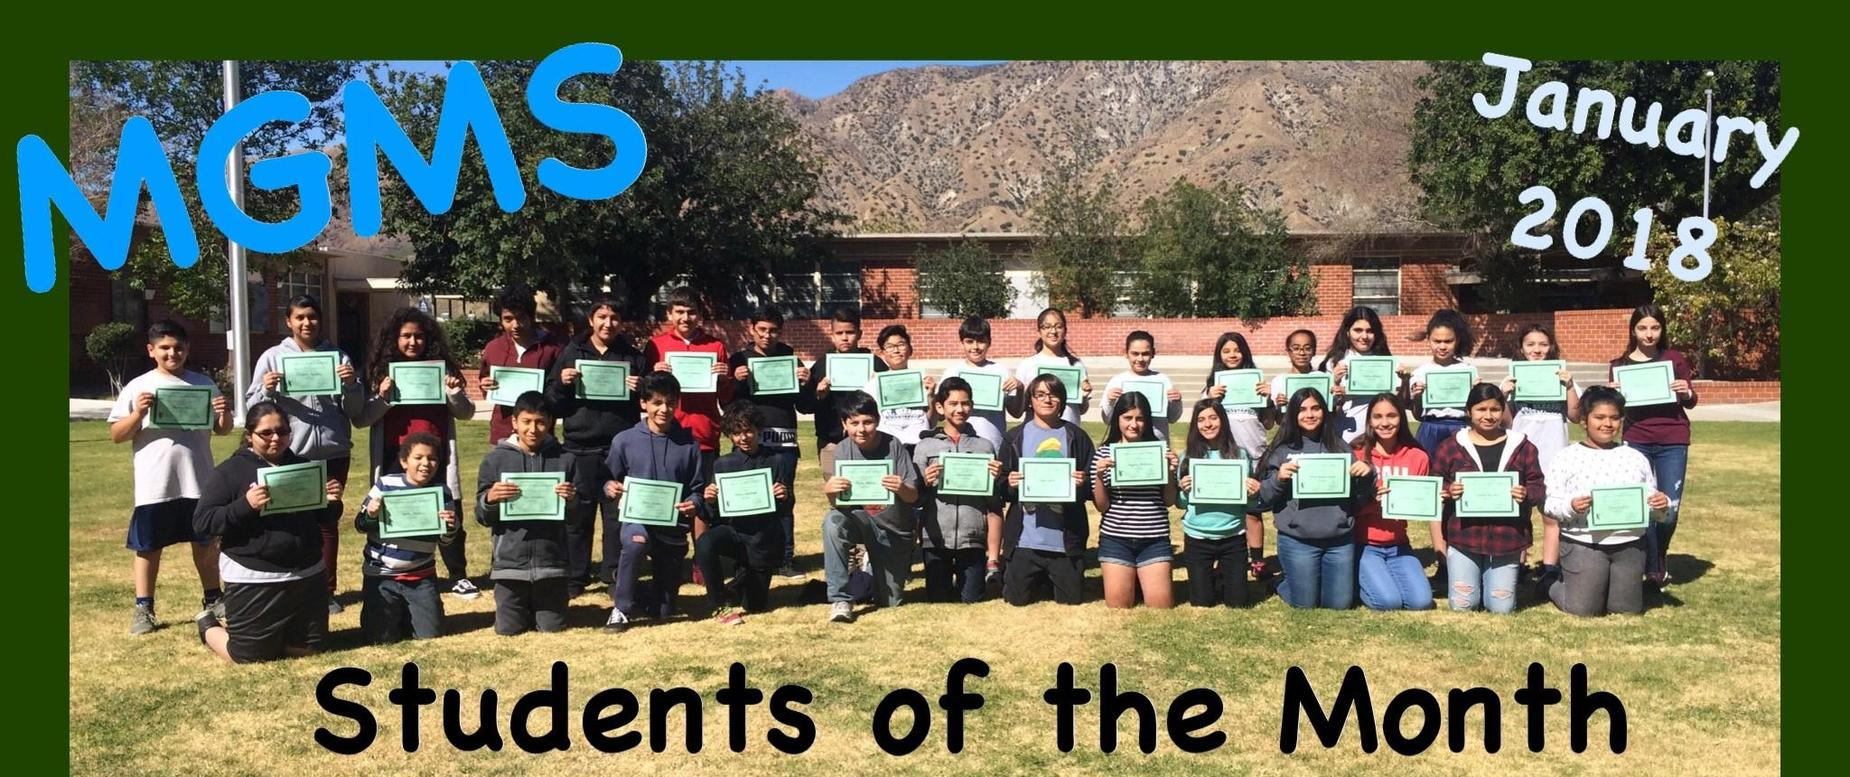 January 2018 Students of the month